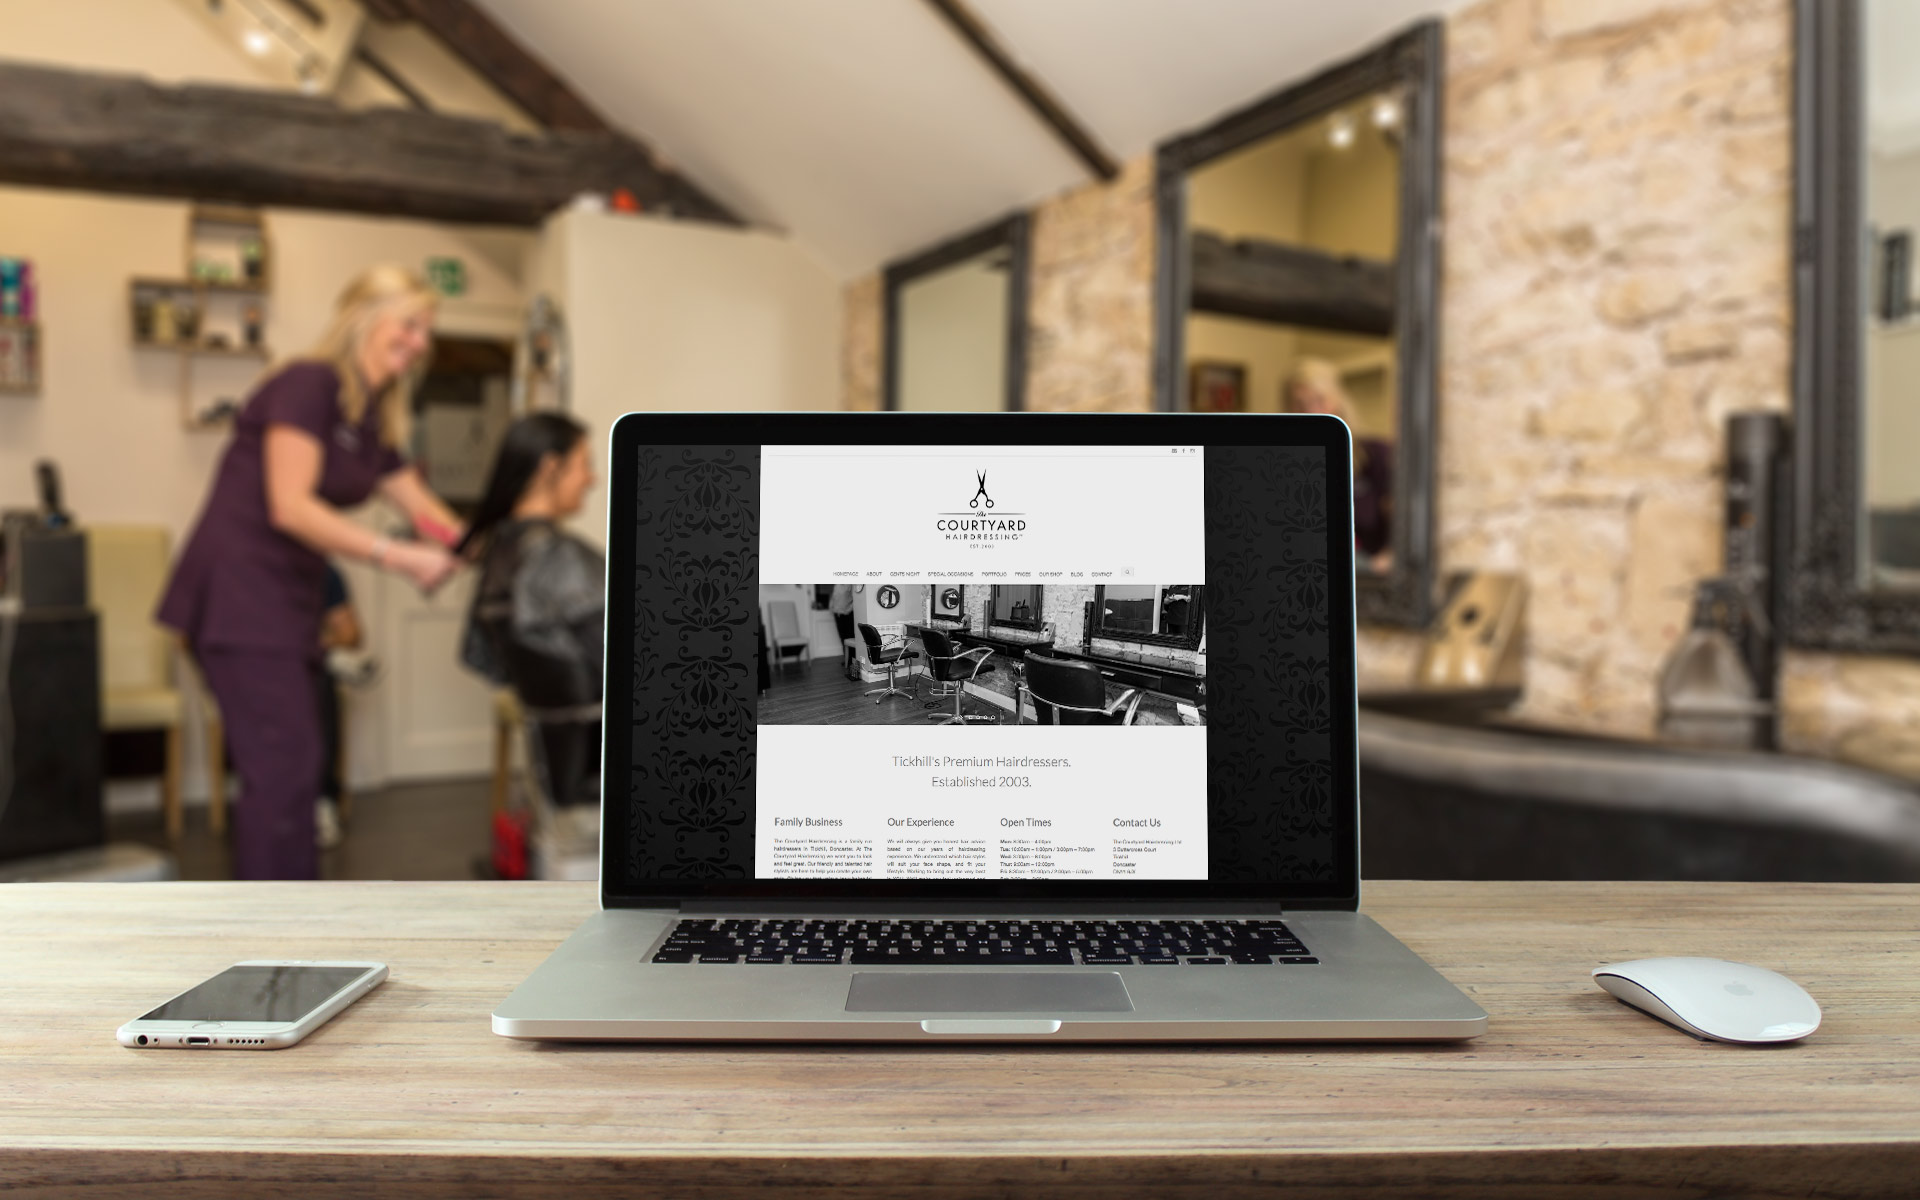 courtyard hairdressing header website designer sheffield idea